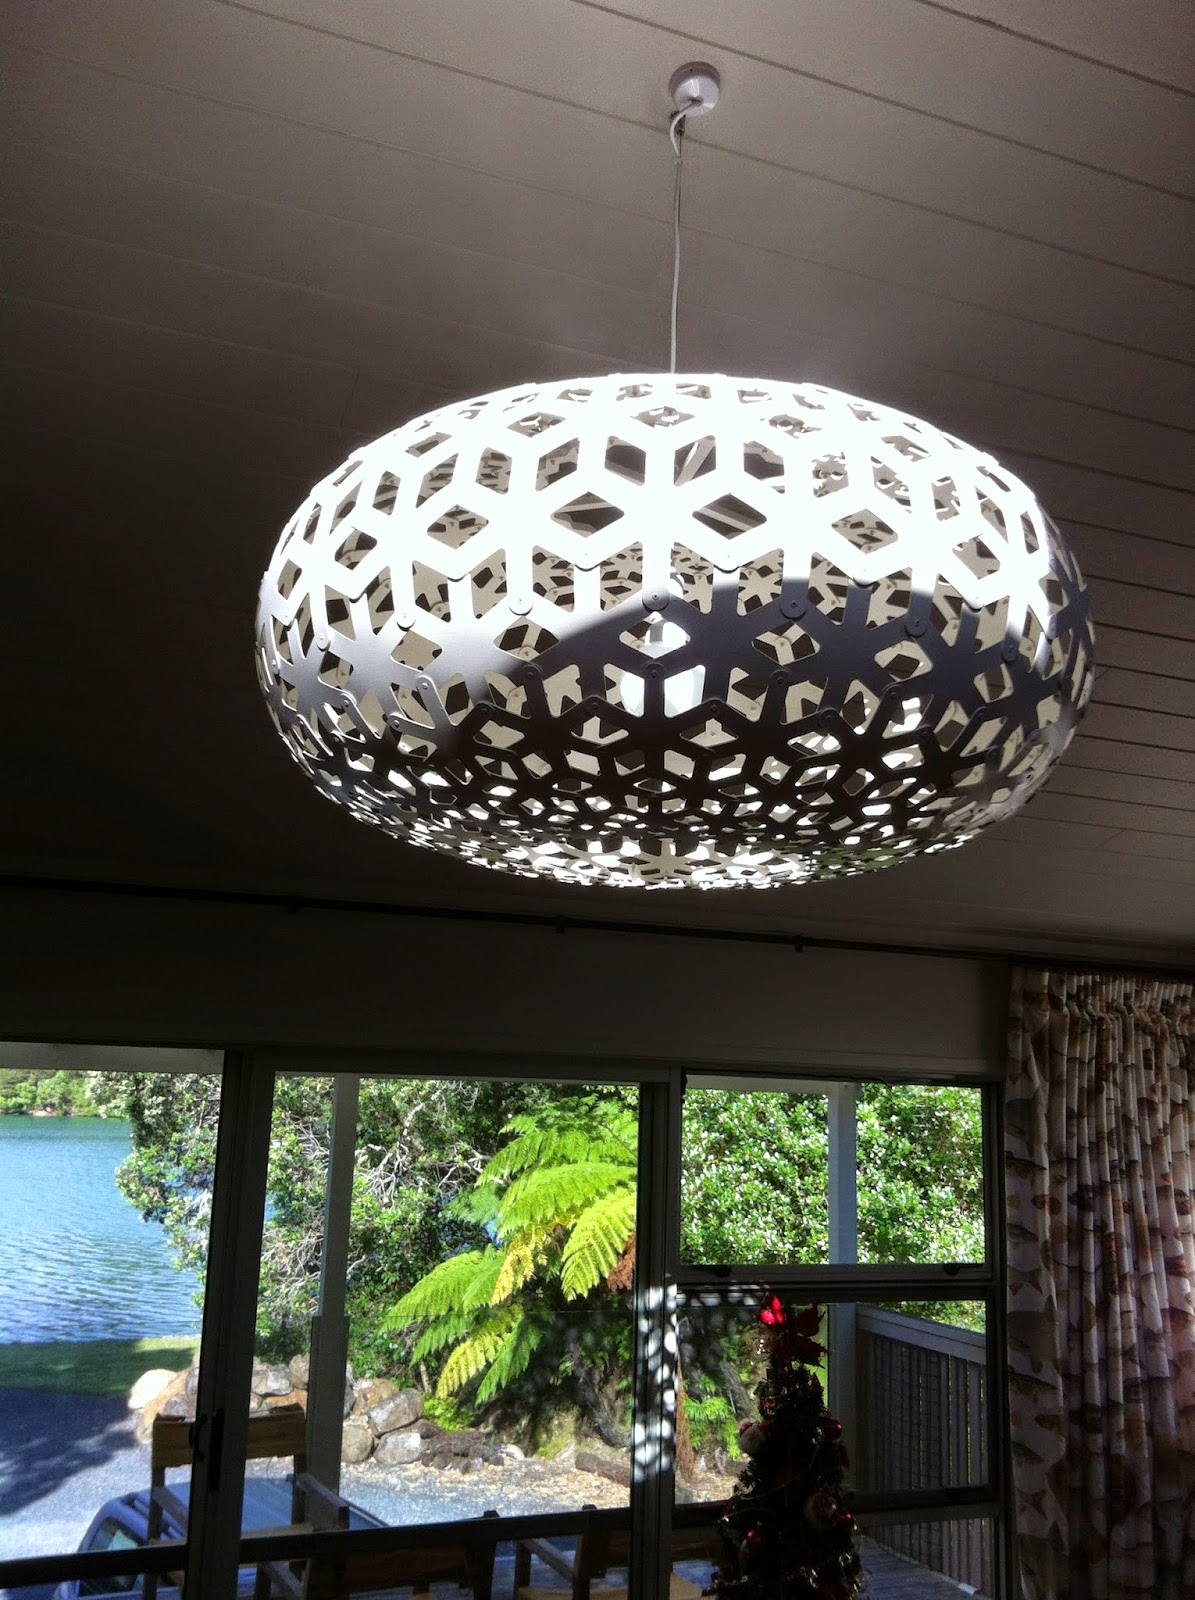 For Details On This Snowflake Design, Or Customizing Your Own David  Trubridge Light, Contact Us.